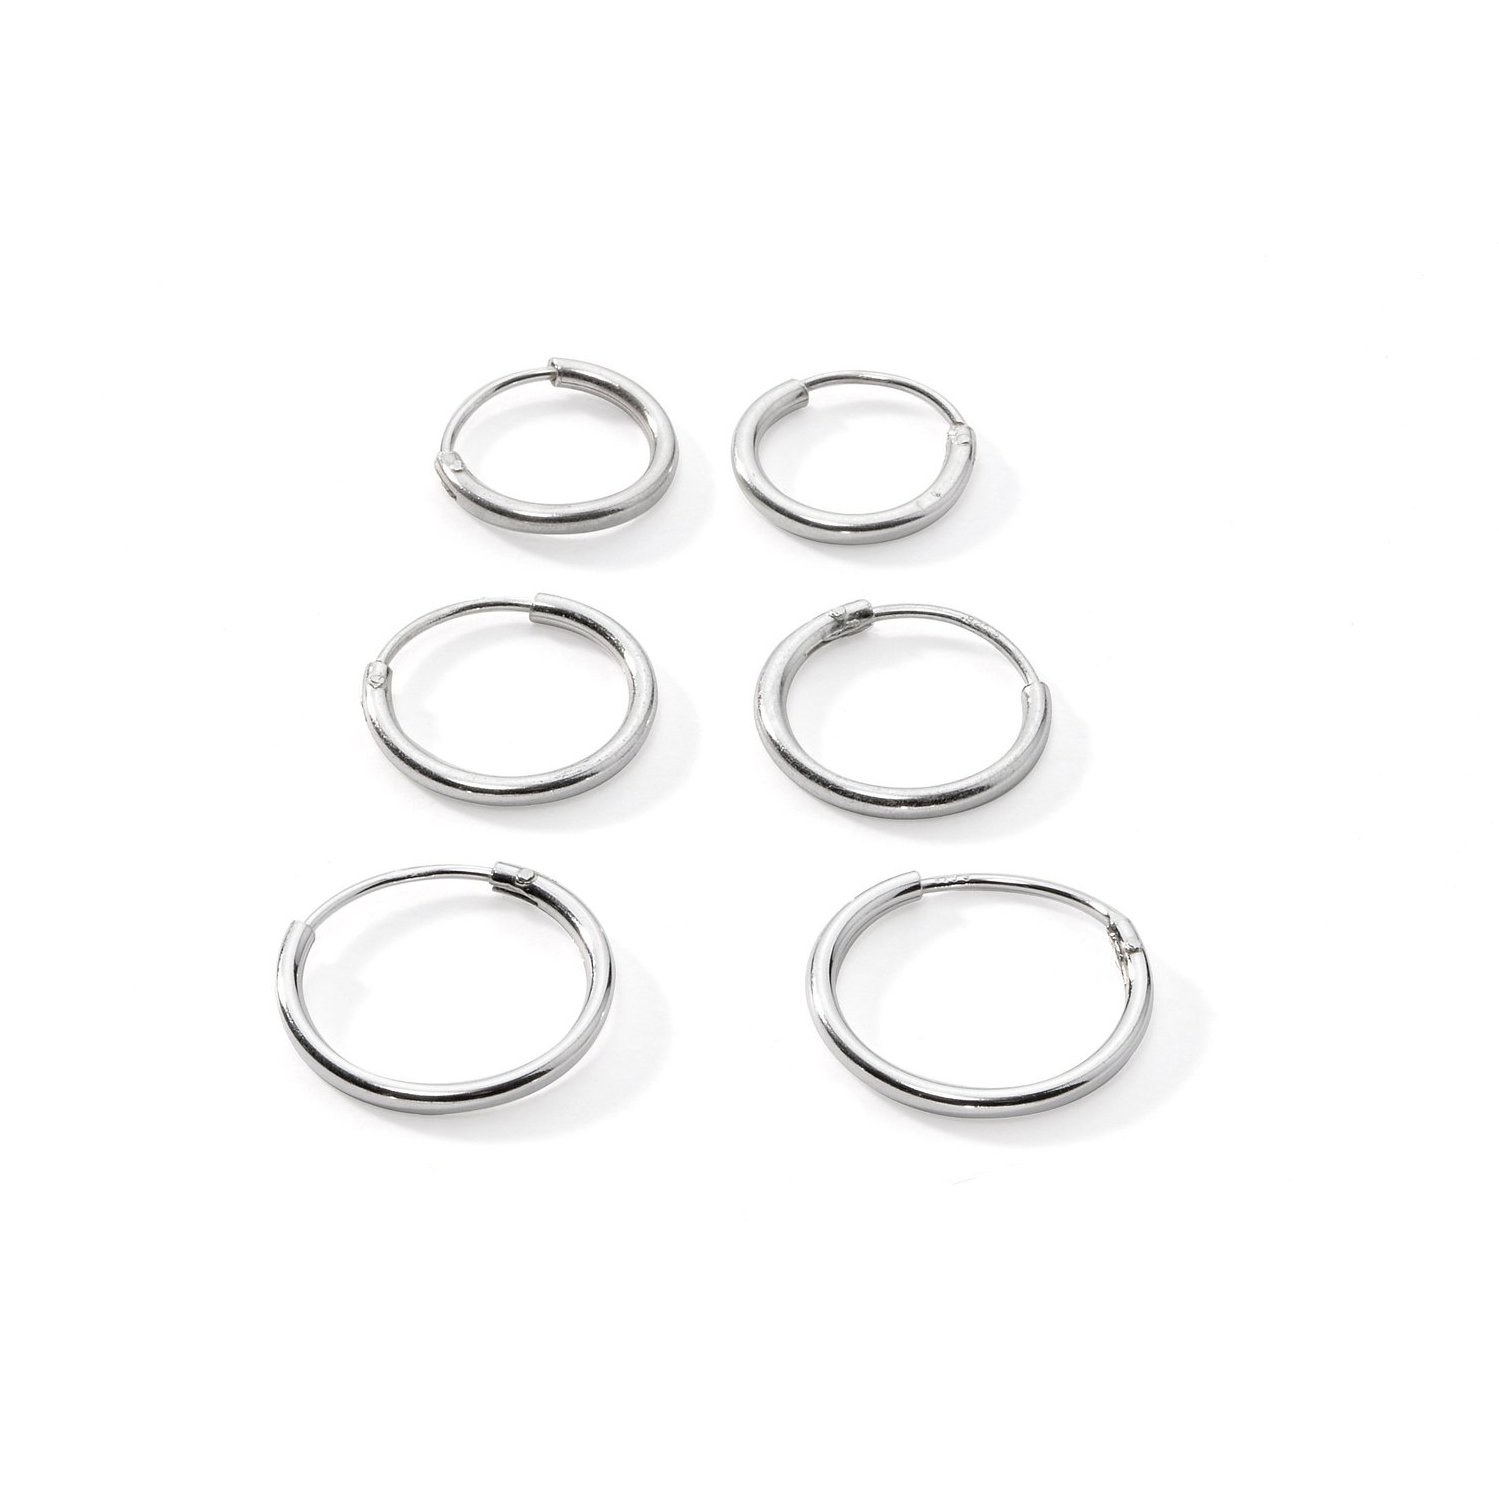 3-Pairs Cartilage/Nose/Lips Sterling Silver 925 Small Endless Hoop Earrings 10mm, 12mm, 14mm